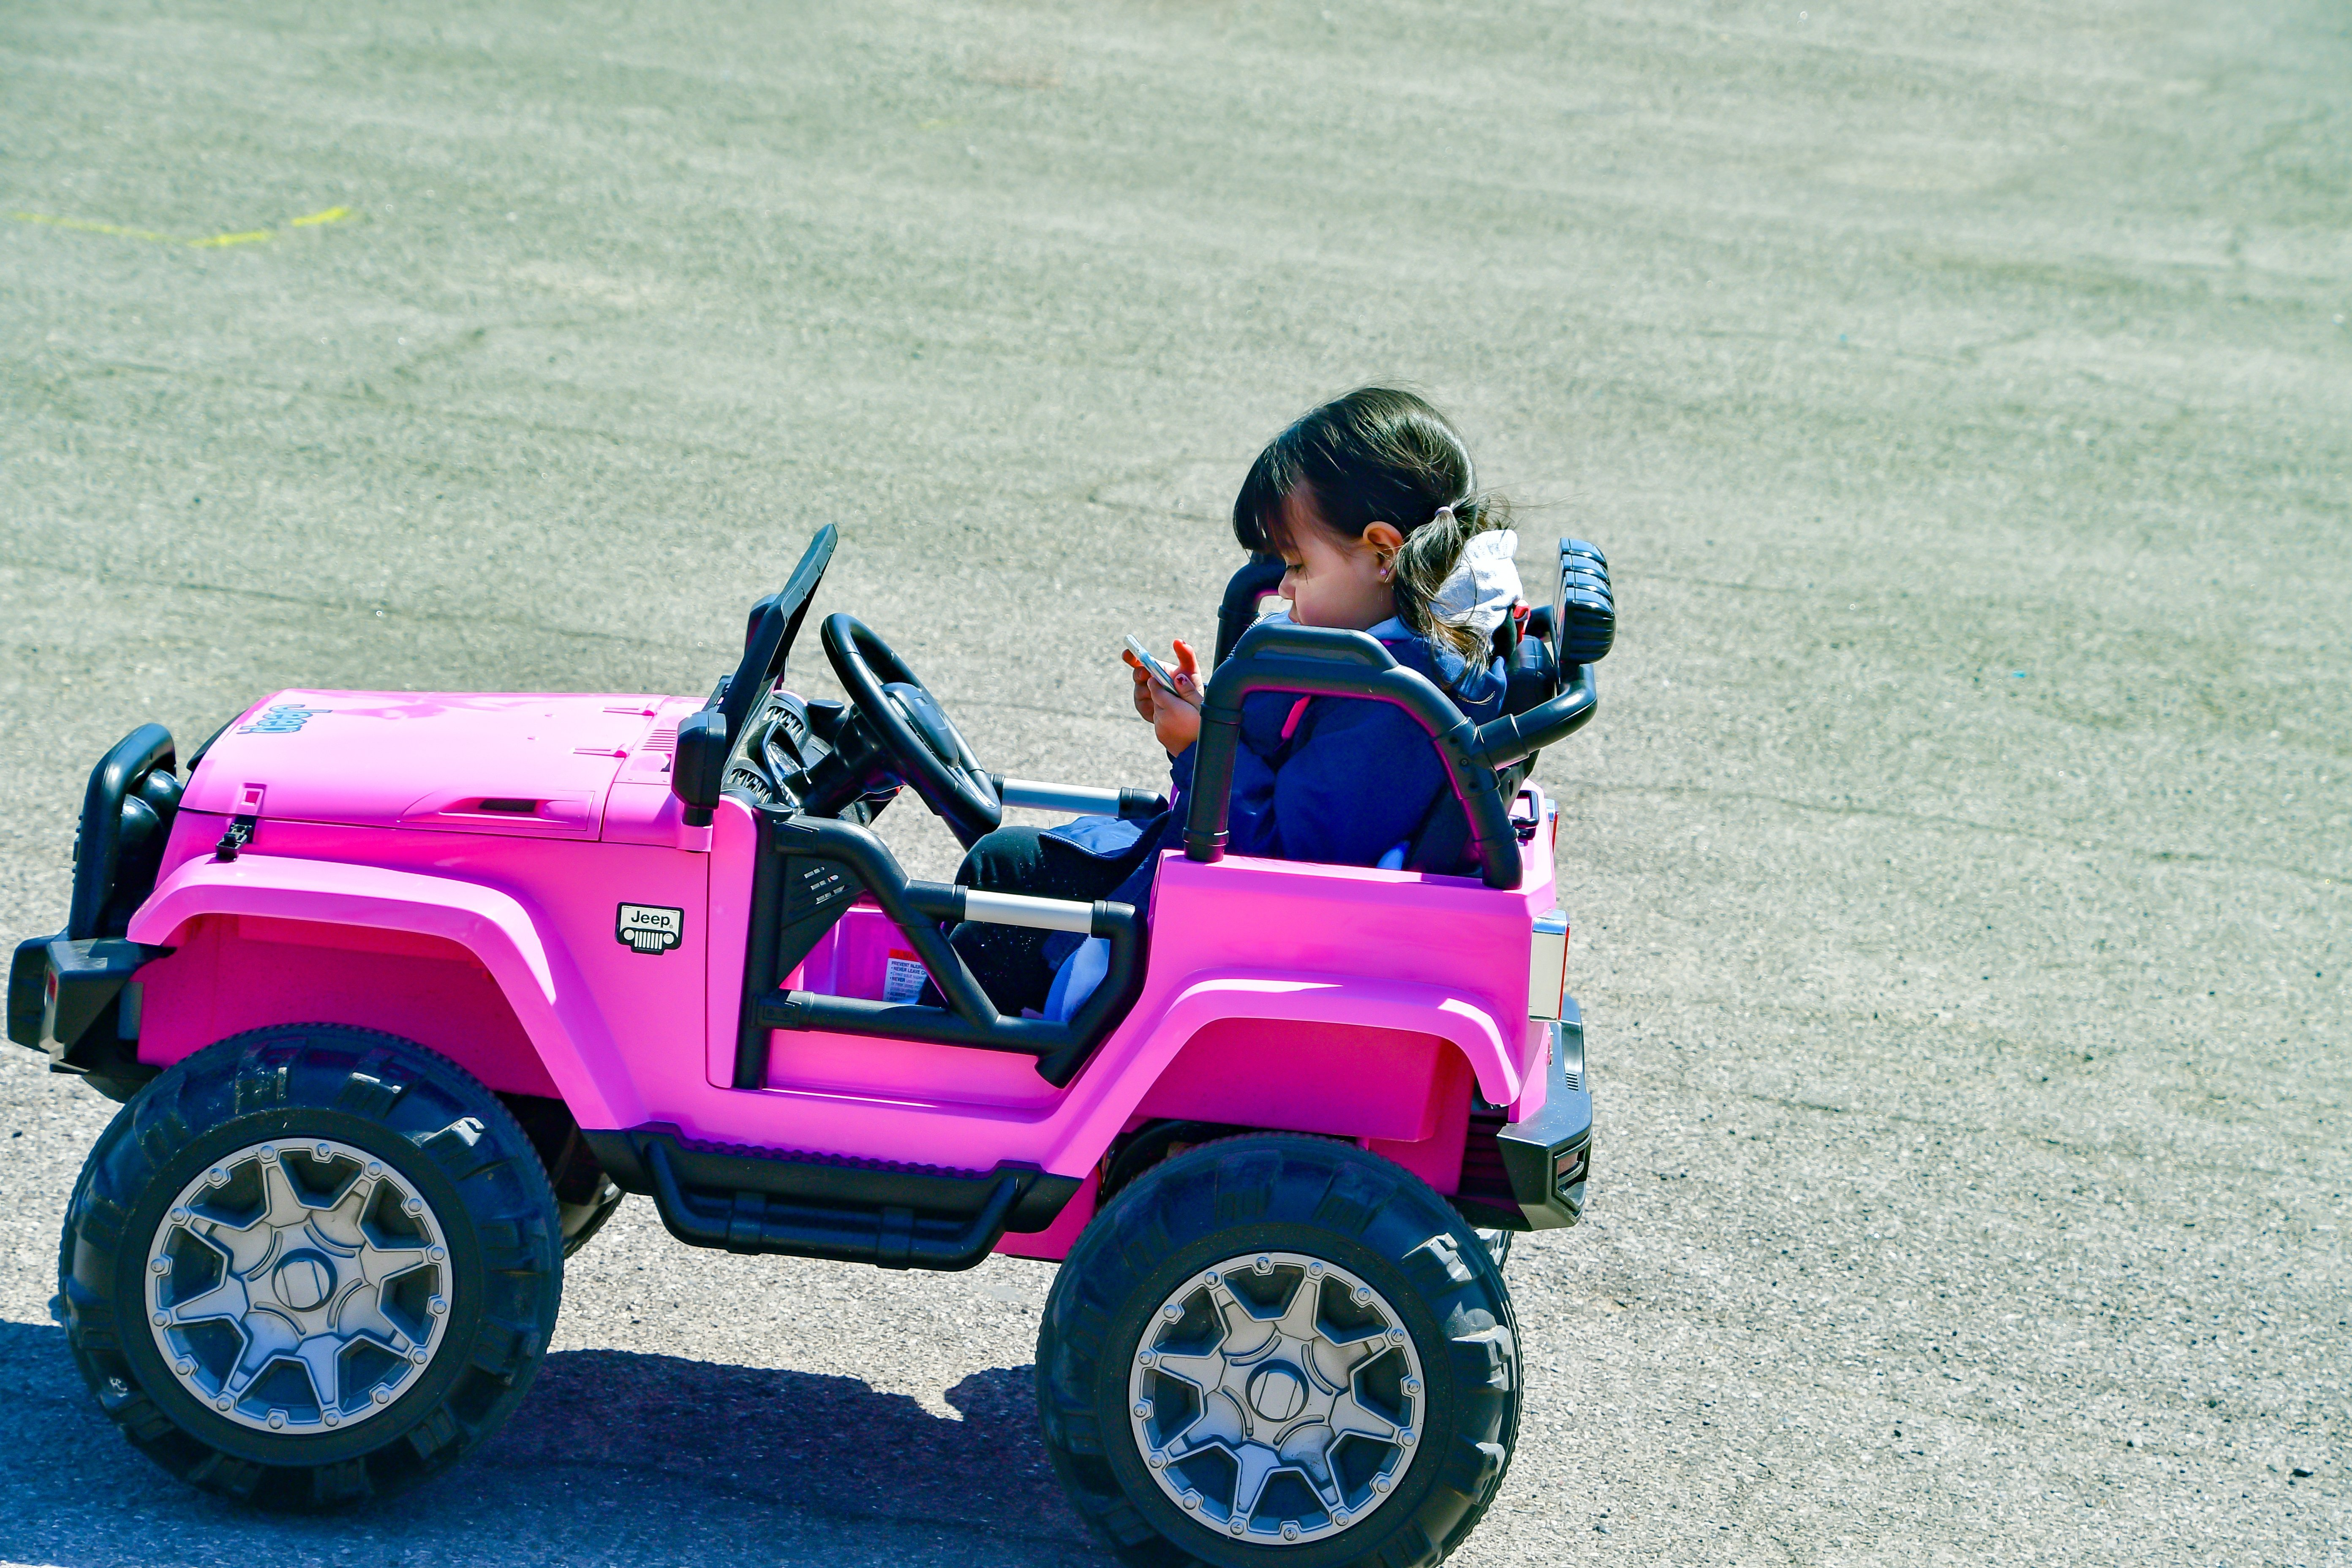 A little girl texting in her toy car. | Source: Shutterstock